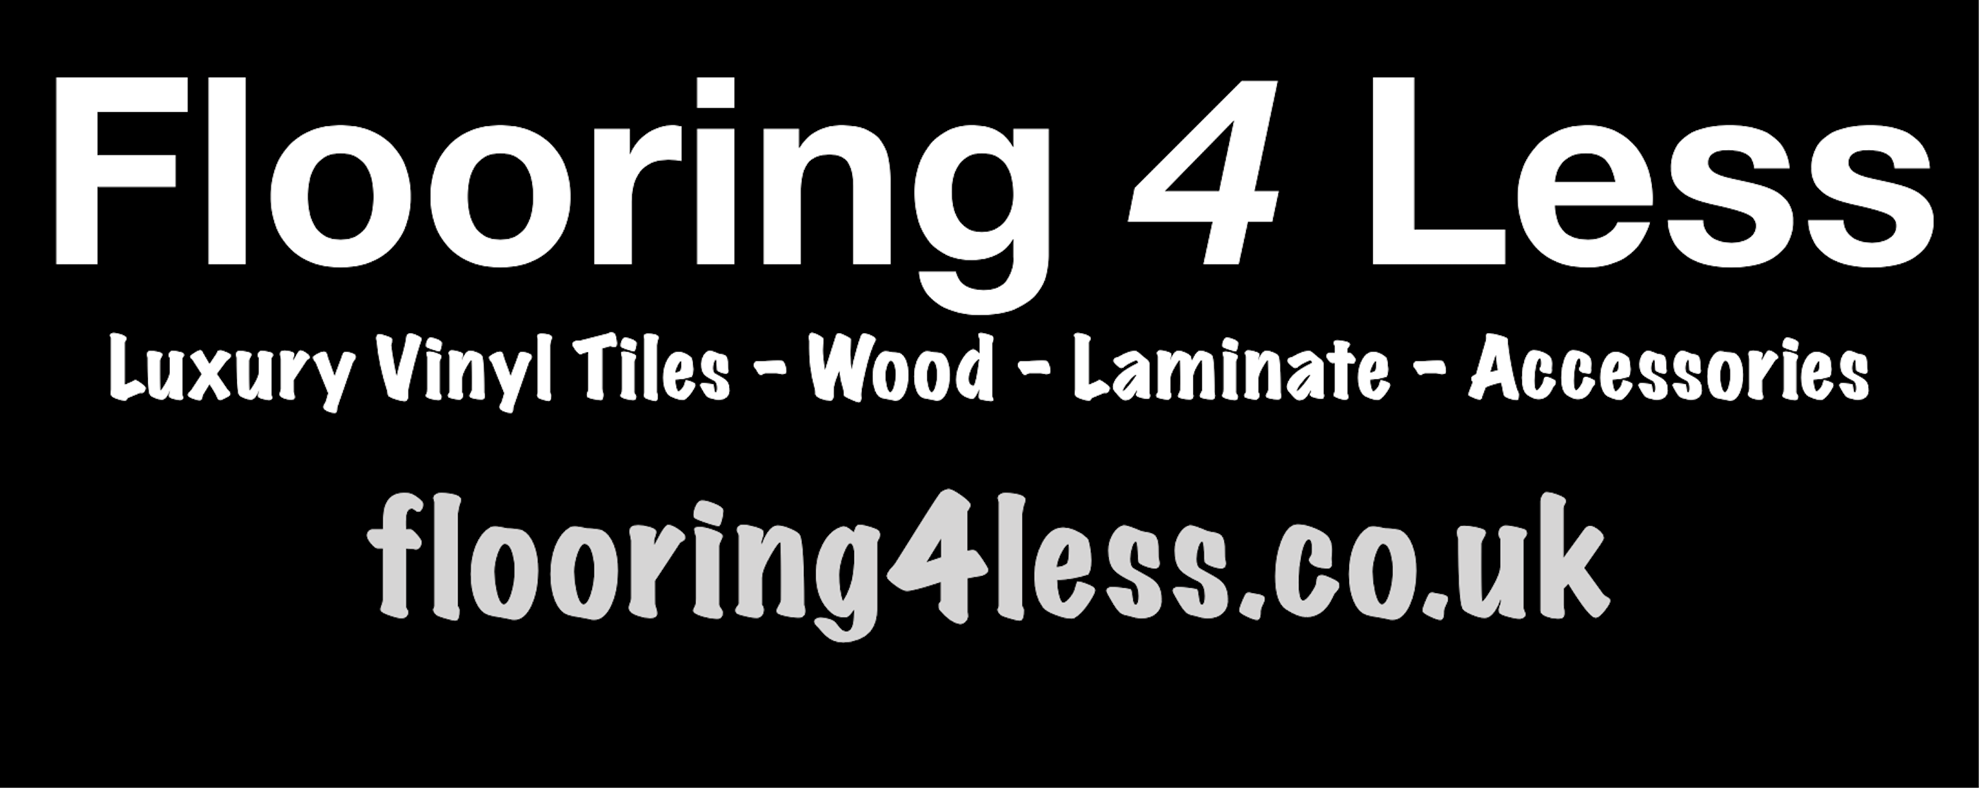 flooring4less.co.uk